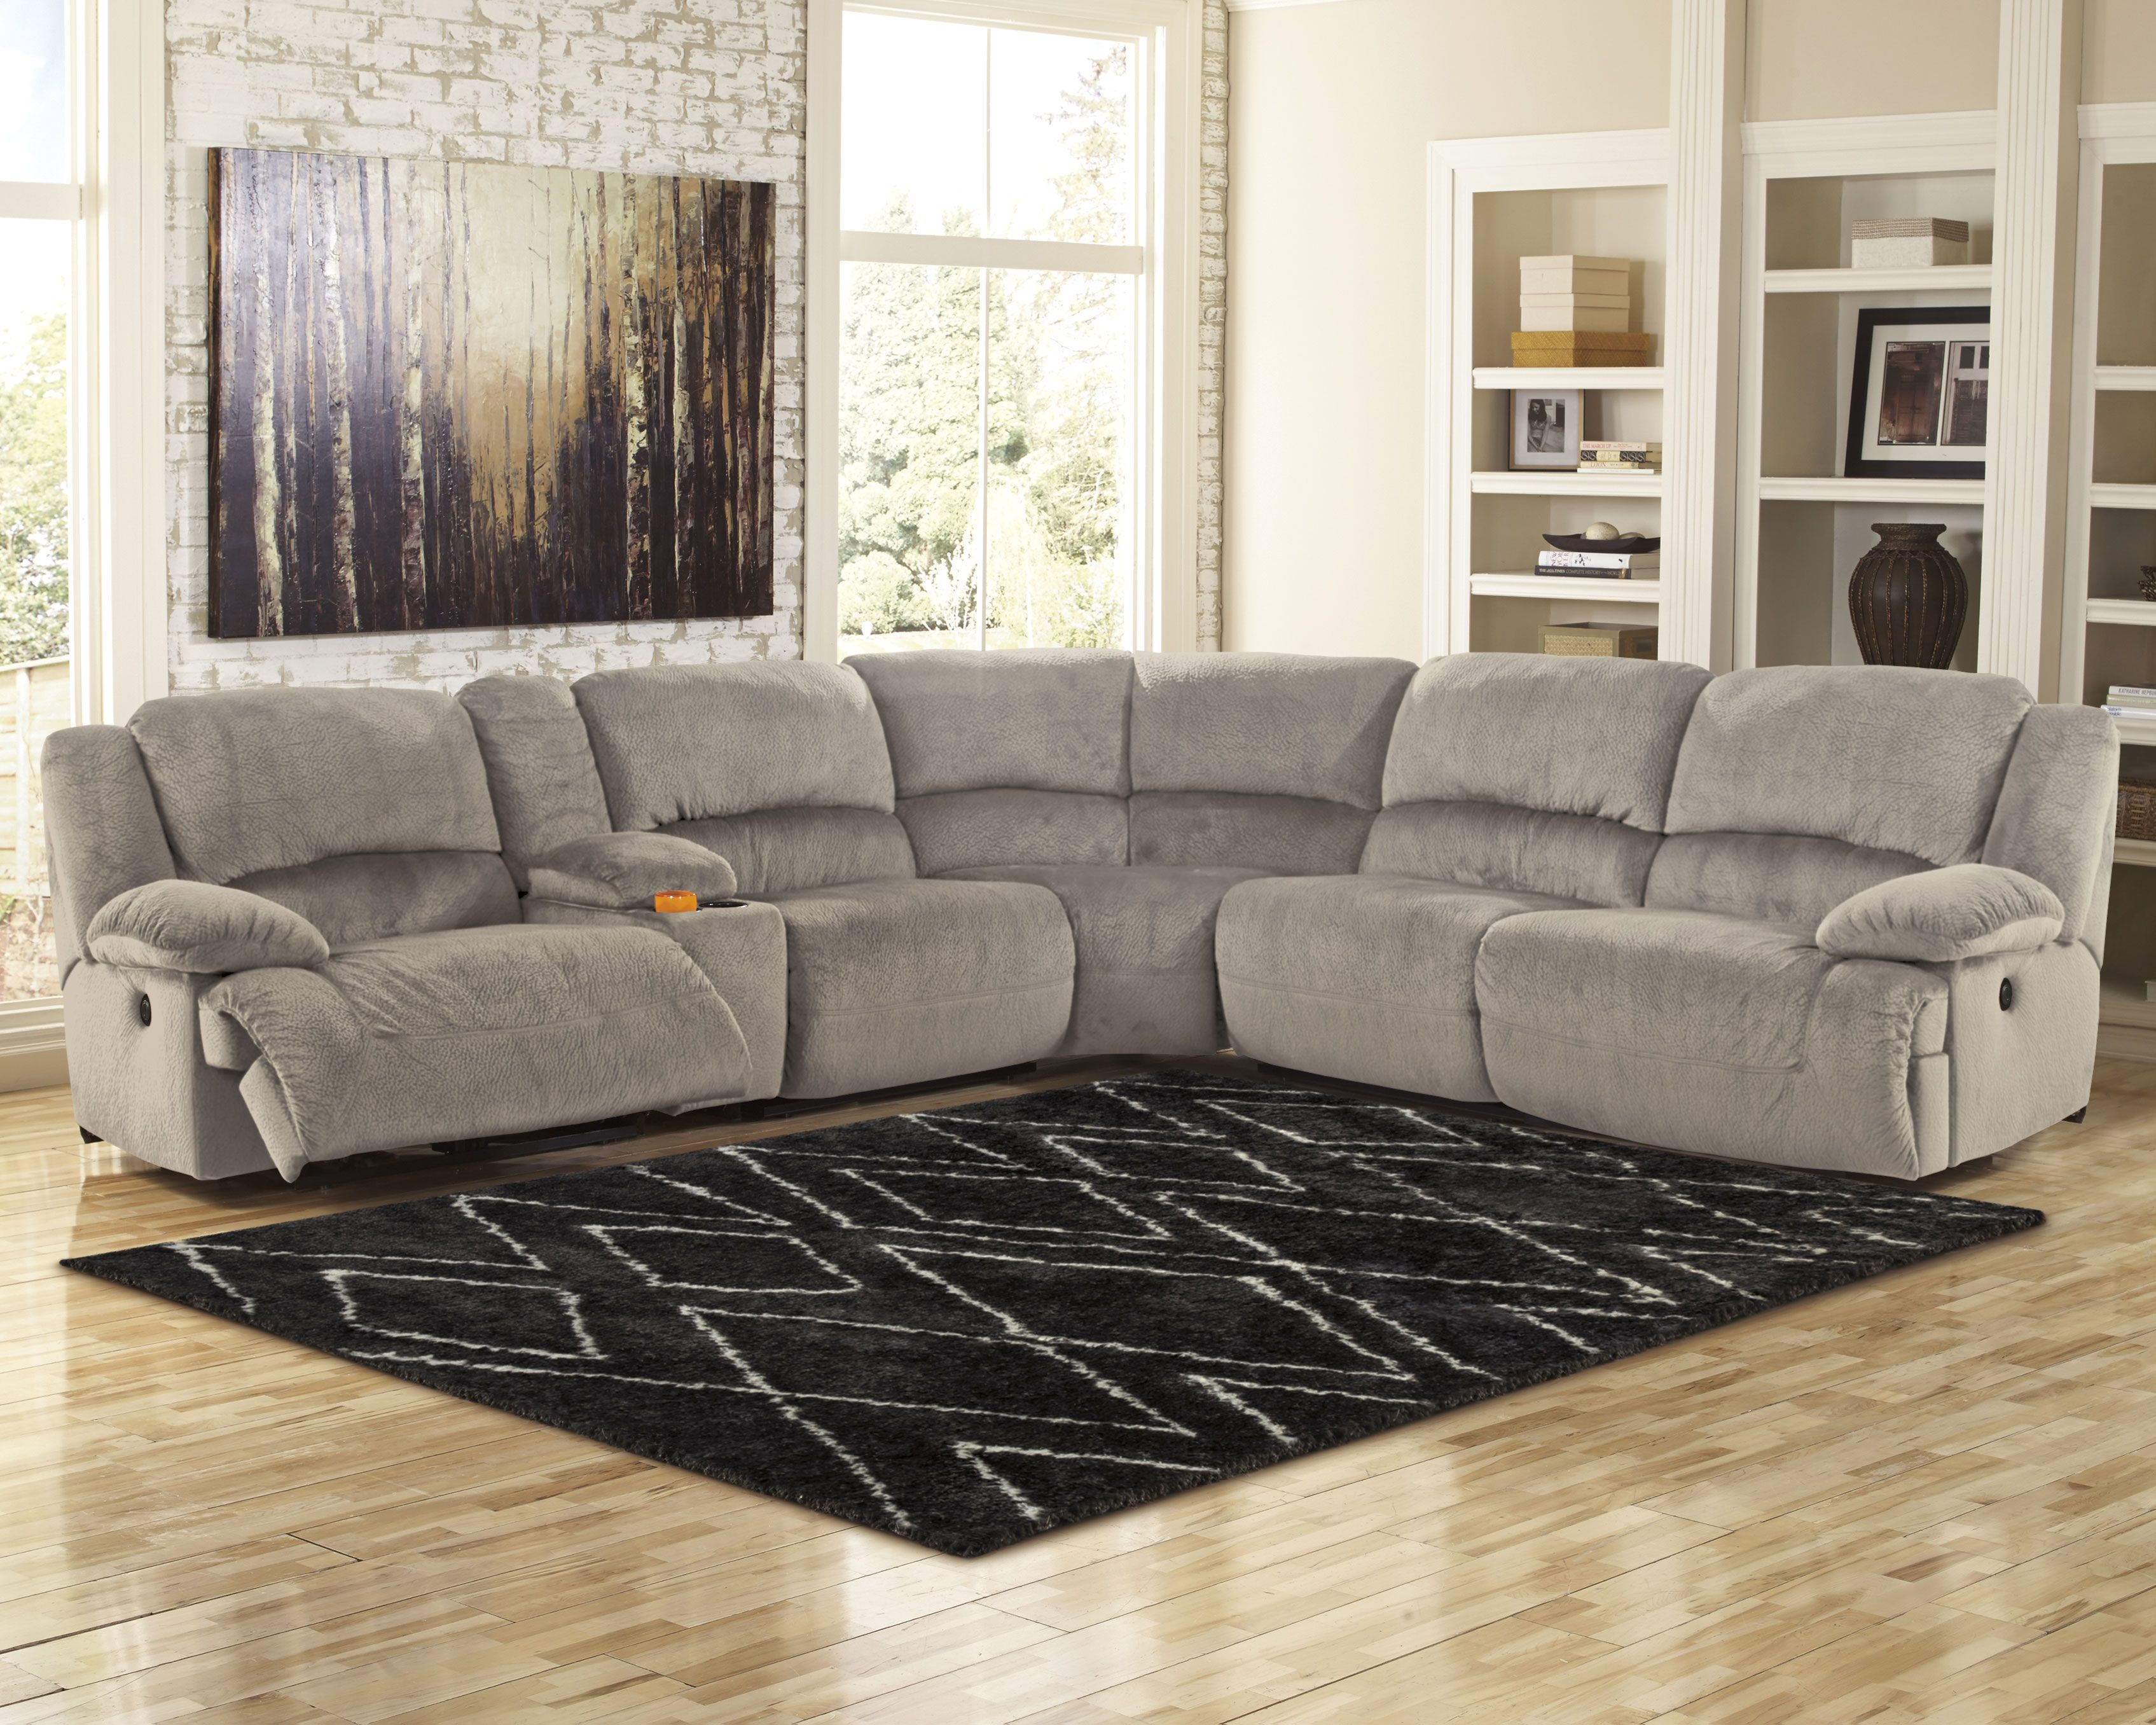 Toletta 6 Piece Sectional Granite Reclining Sectional